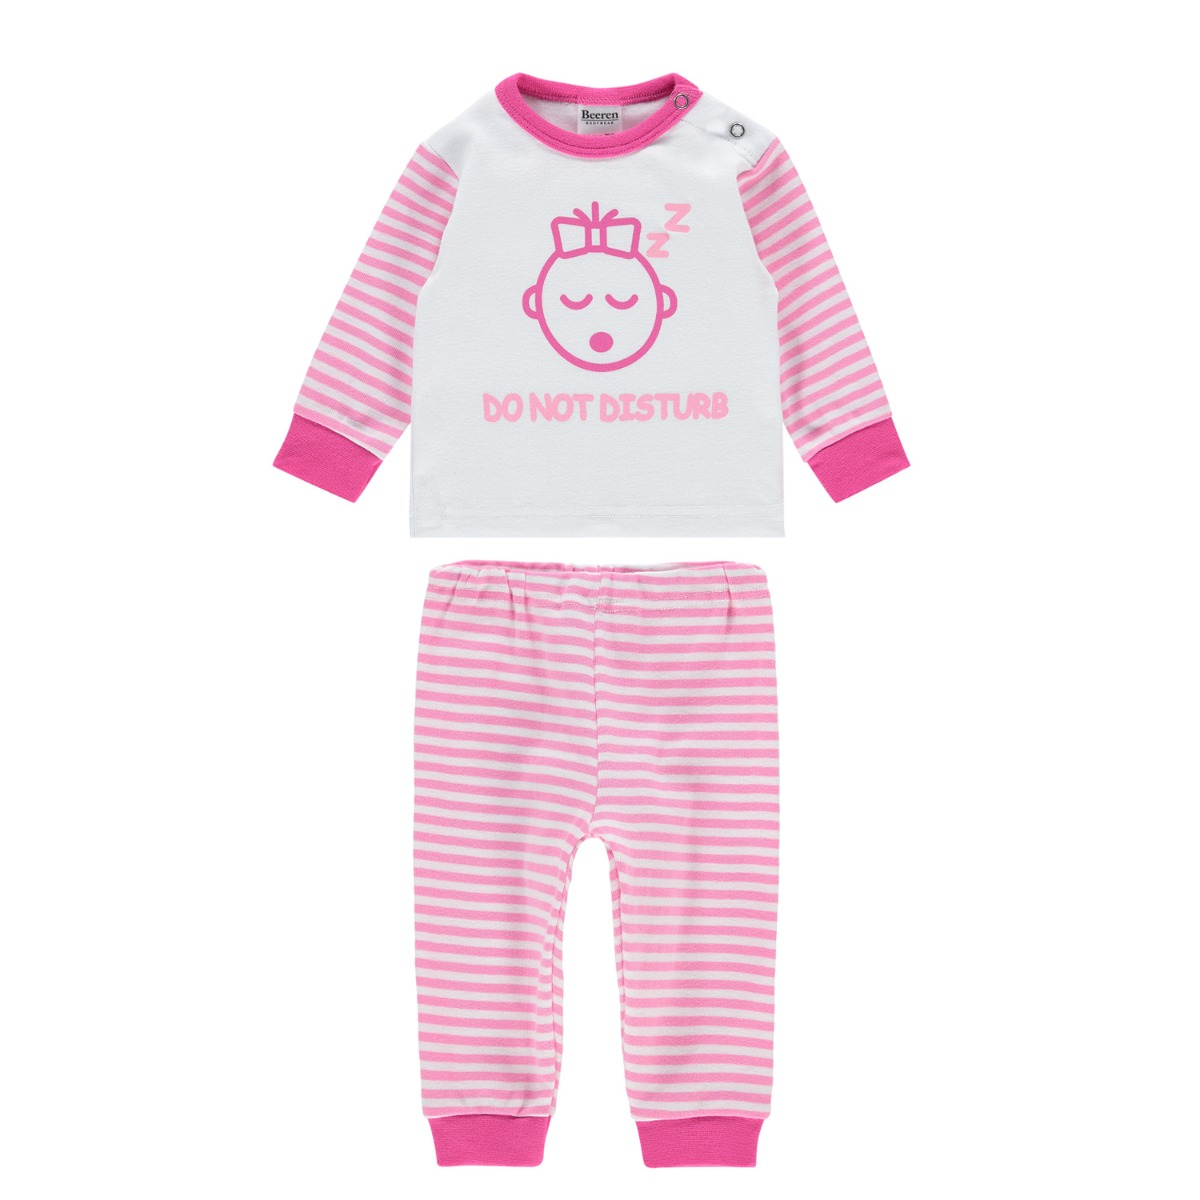 Beeren M3000 Baby Pyjama Do Not Disturb Pink 50/56